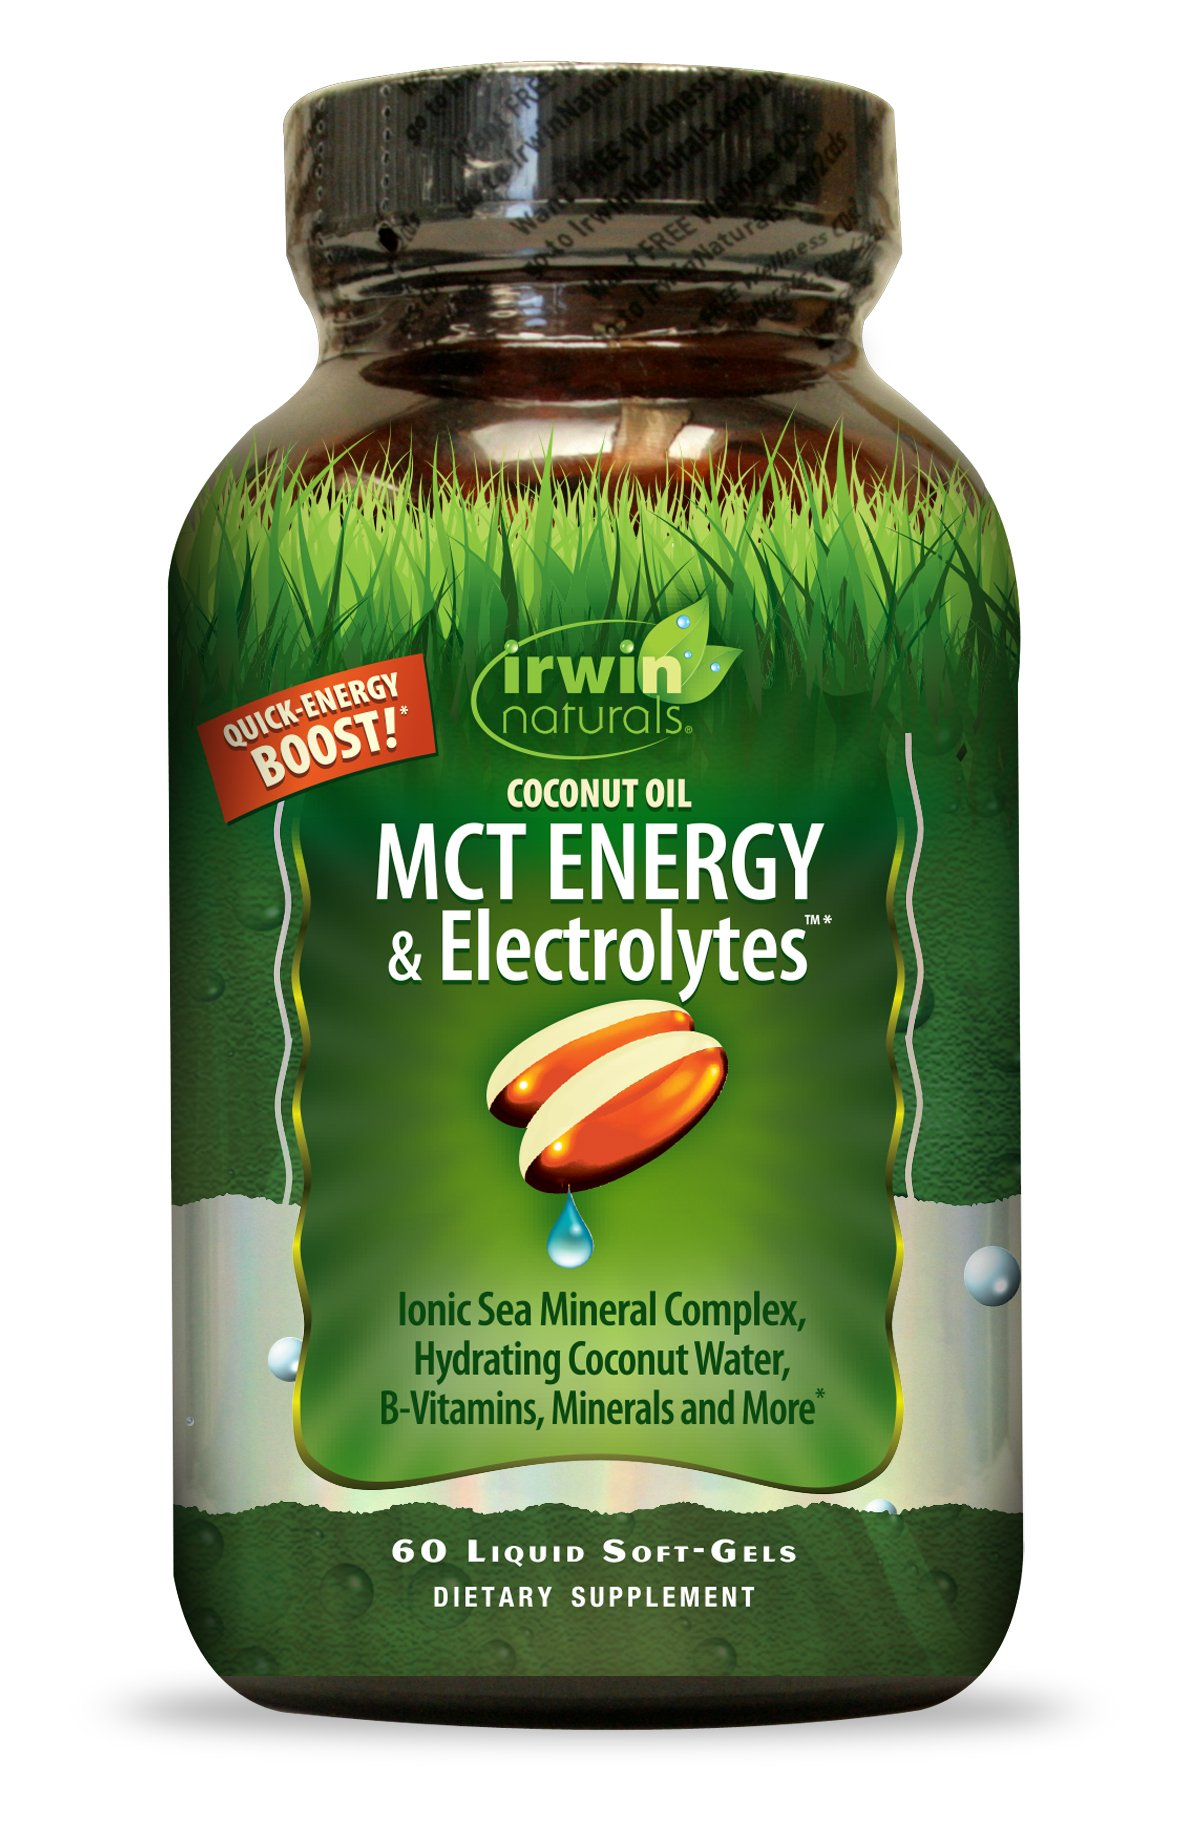 Irwin Naturals Coconut Oil MCT Energy & Electrolytes, Hydrating Ionic Sea Mineral Complex B-Vitamins & Minerals, 60 Liquid Softgels